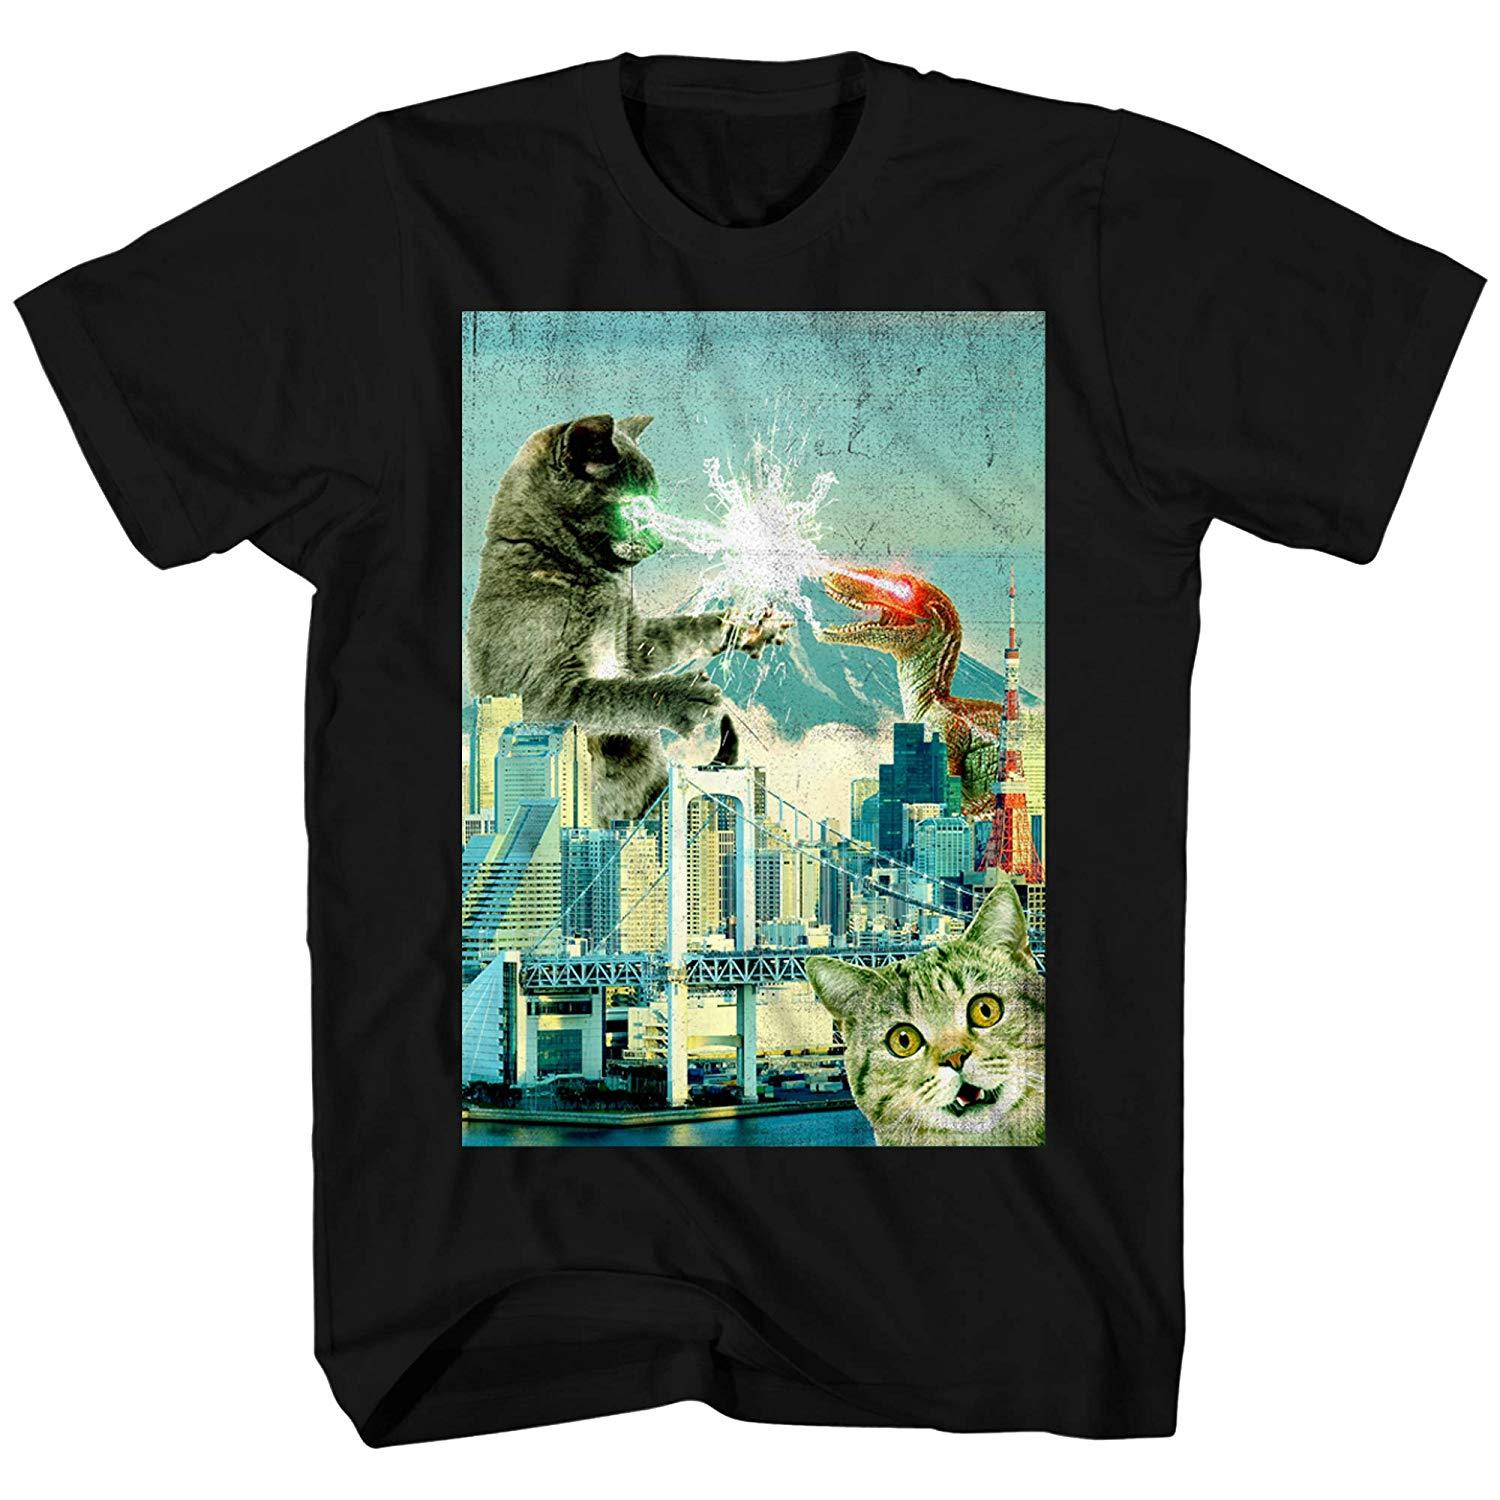 Cat Fight Dinosaur Laser Classic Retro Funny Humor Pun Adult Men's Graphic T-Shirt Tee Shirt